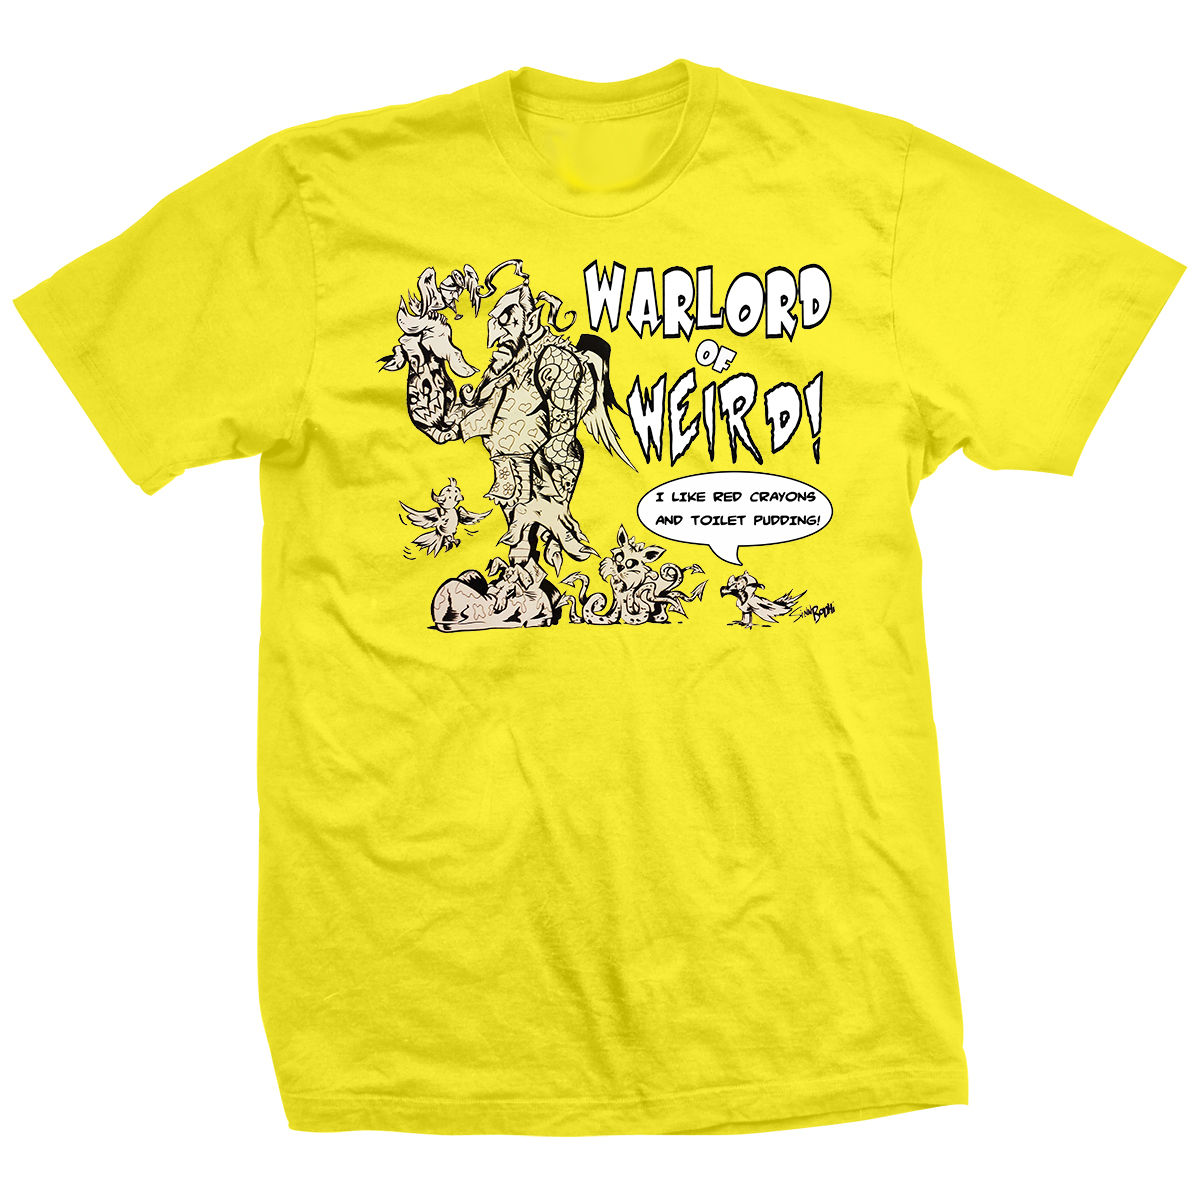 Warlord of Weird T-shirt